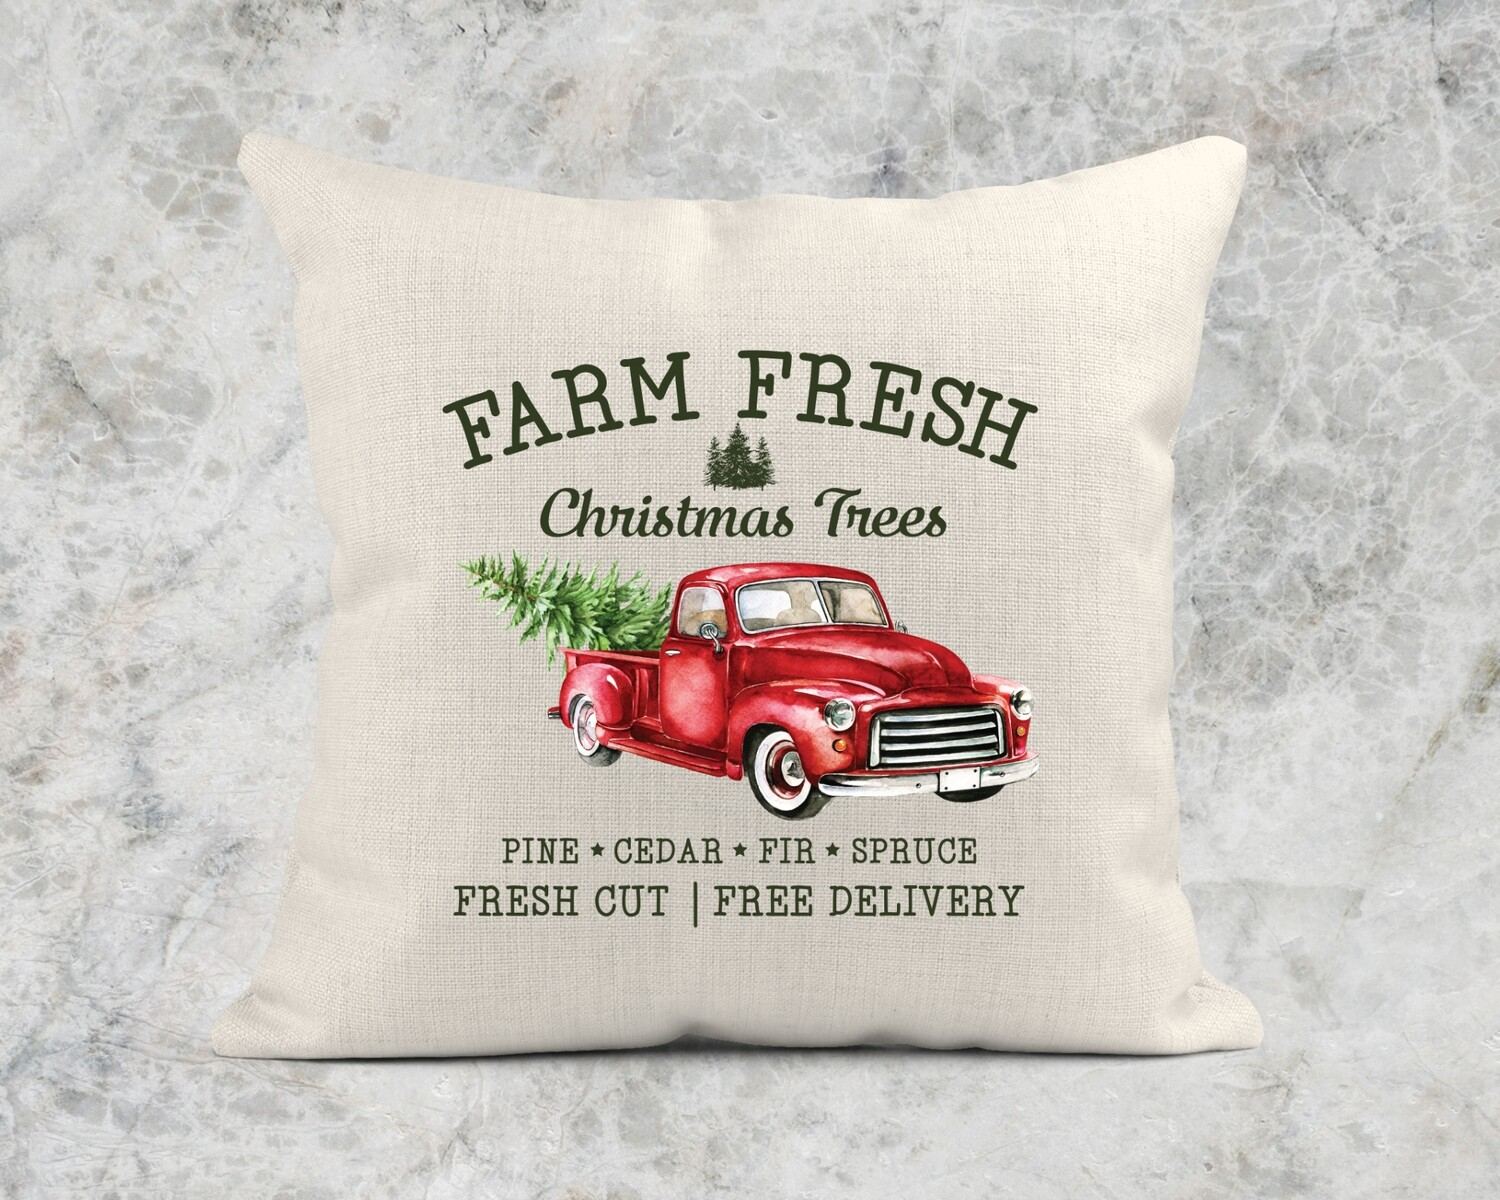 FARM FRESH CHRISTMAS TREES TRUCK PILLOW